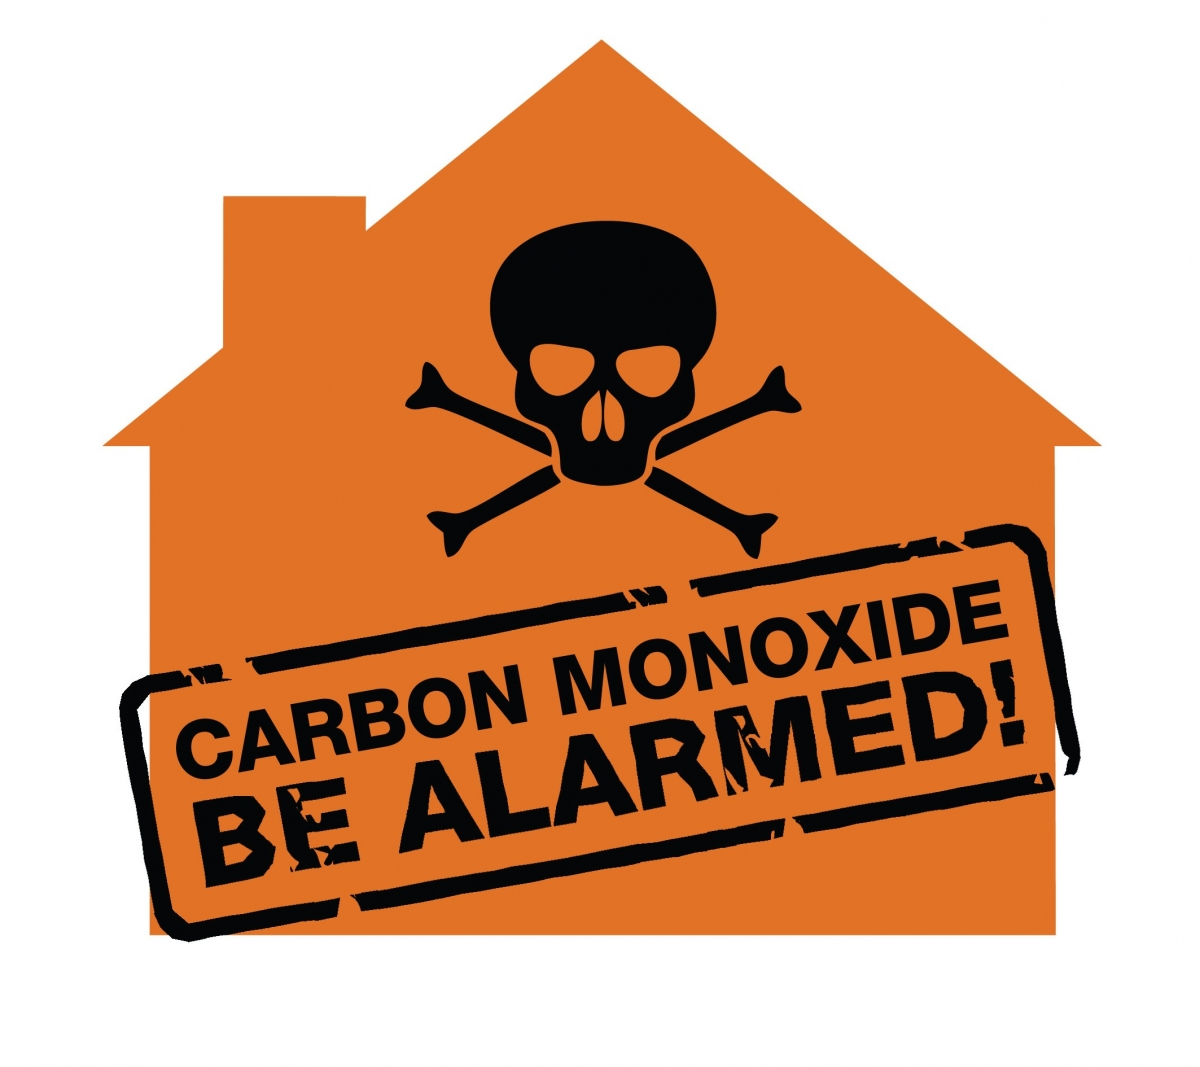 more-than-70-people-are-hospitalized-due-to-carbon-monoxide-exposure